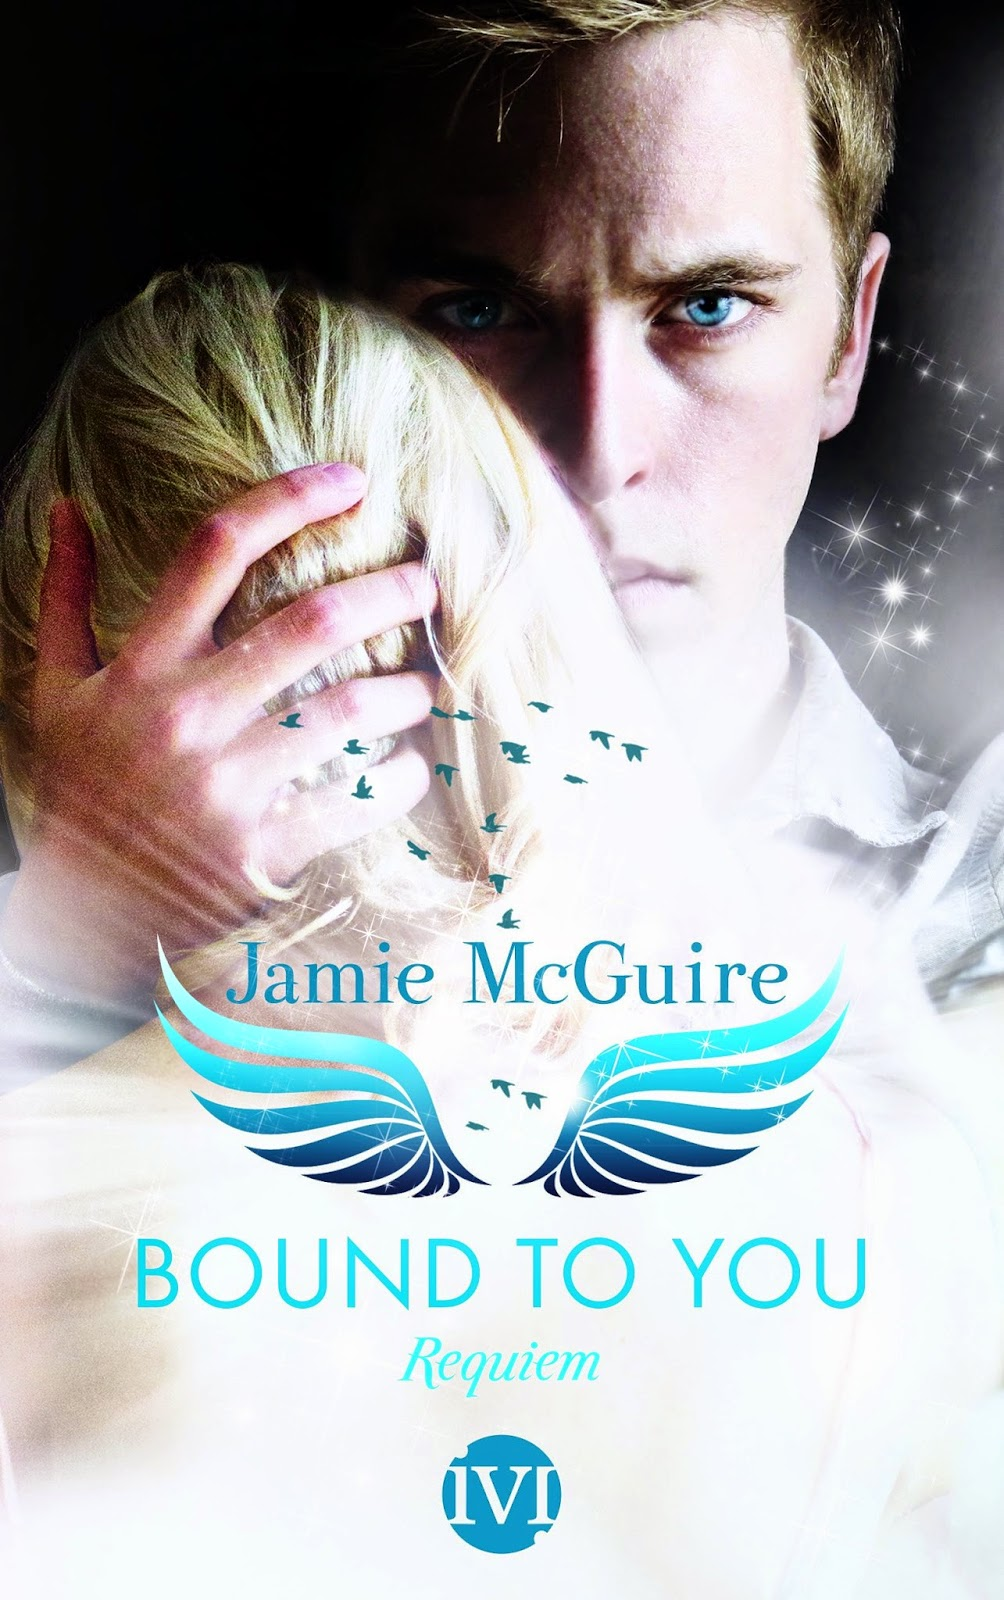 http://www.amazon.de/Bound-You-Requiem-Jamie-McGuire/dp/3492703291/ref=sr_1_2?s=books&ie=UTF8&qid=1425171281&sr=1-2&keywords=bound+to+you